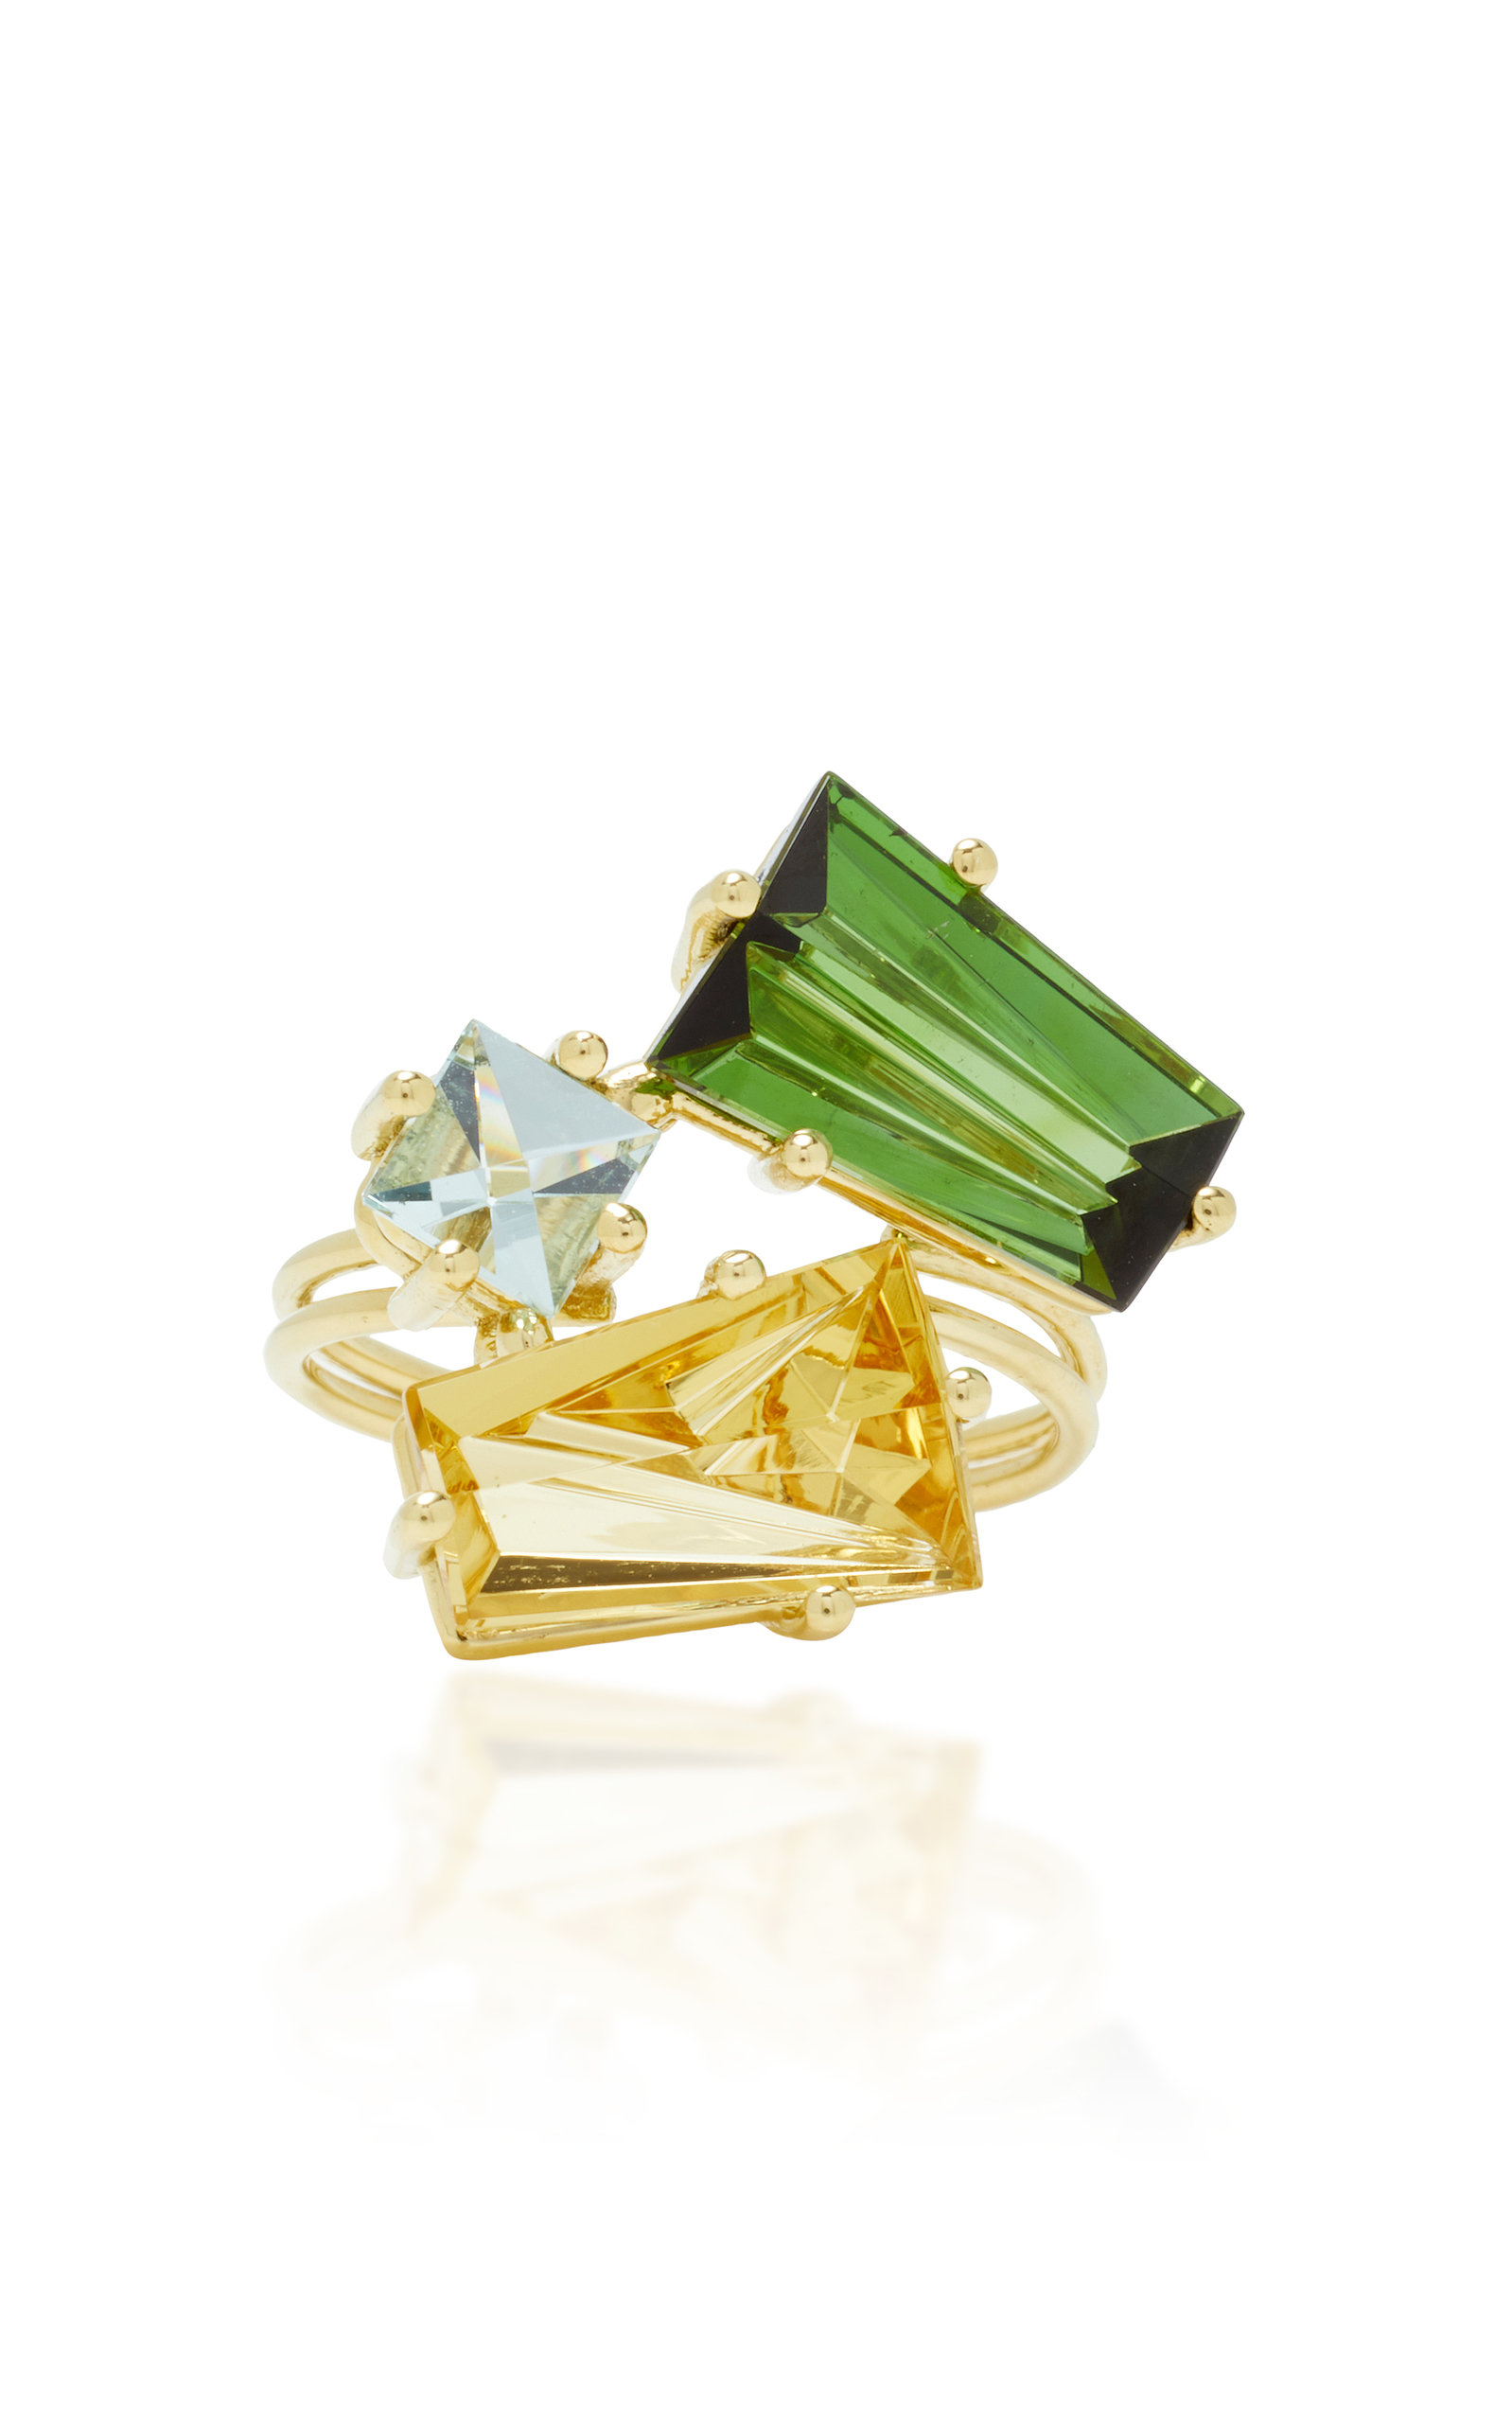 MISUI ONE-OF-A-KIND KLAR TOURMALINE AND BERYL RING